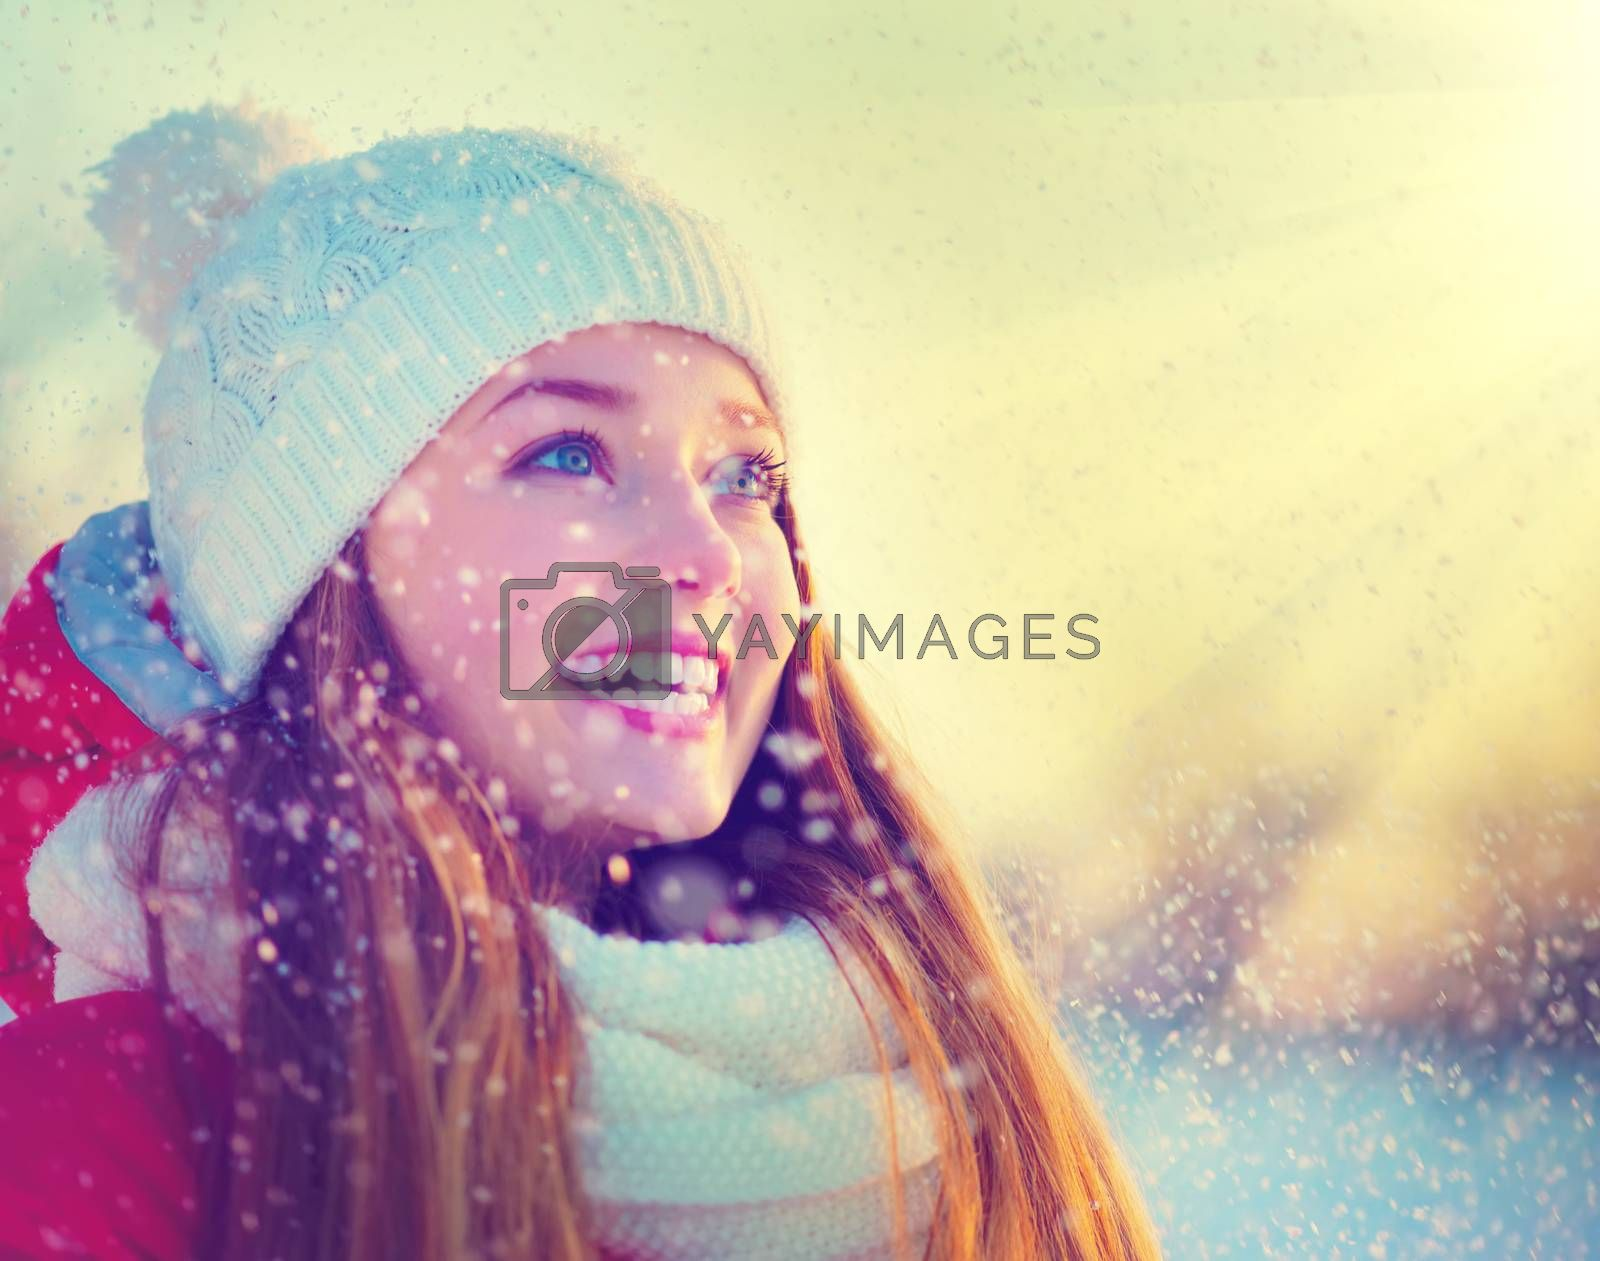 Royalty free image of Beauty Winter Girl Having Fun in Winter Park by SubbotinaA